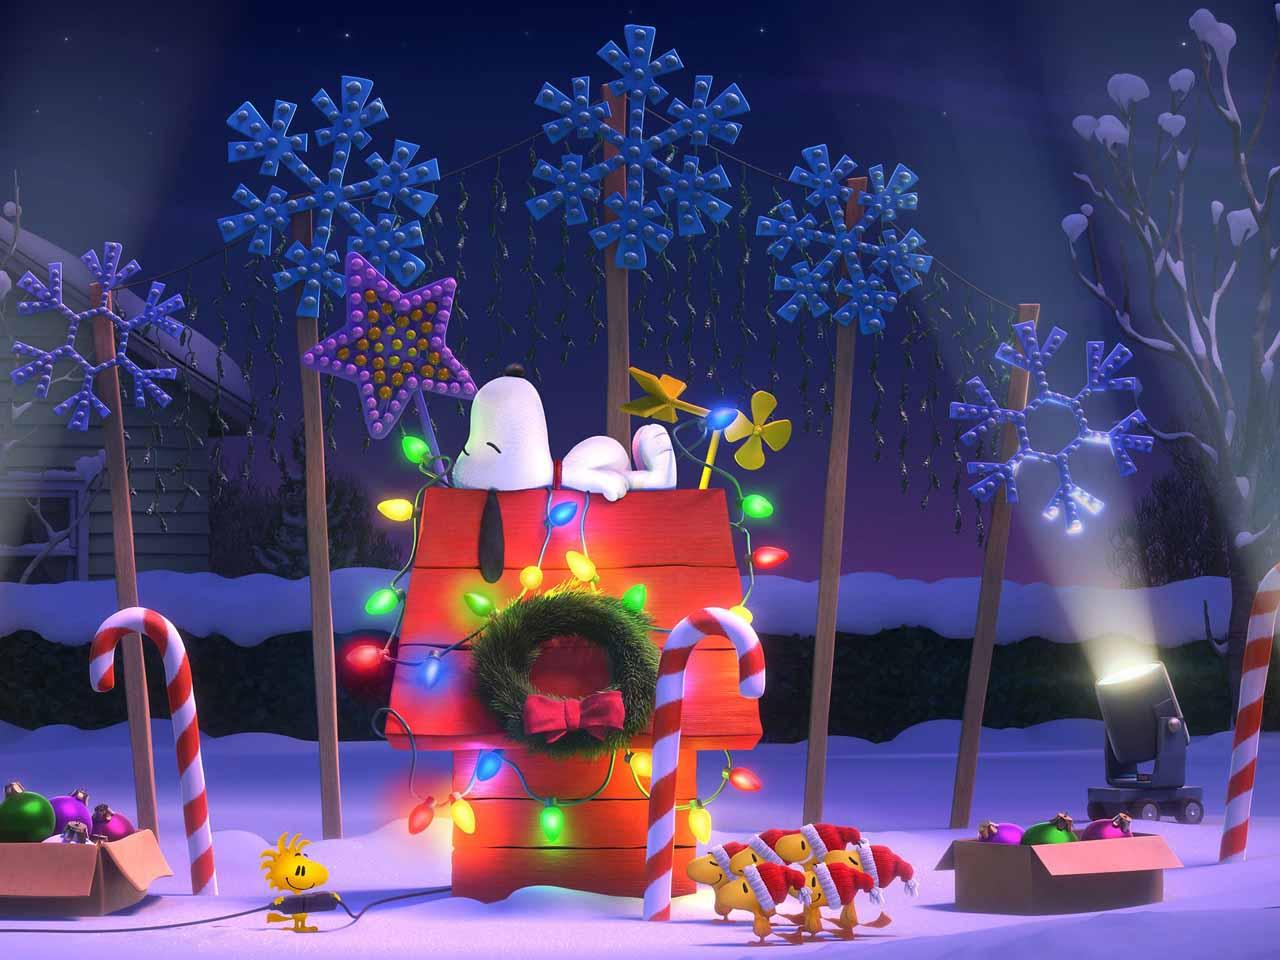 5-new-images-from-the-animated-peanuts-film1